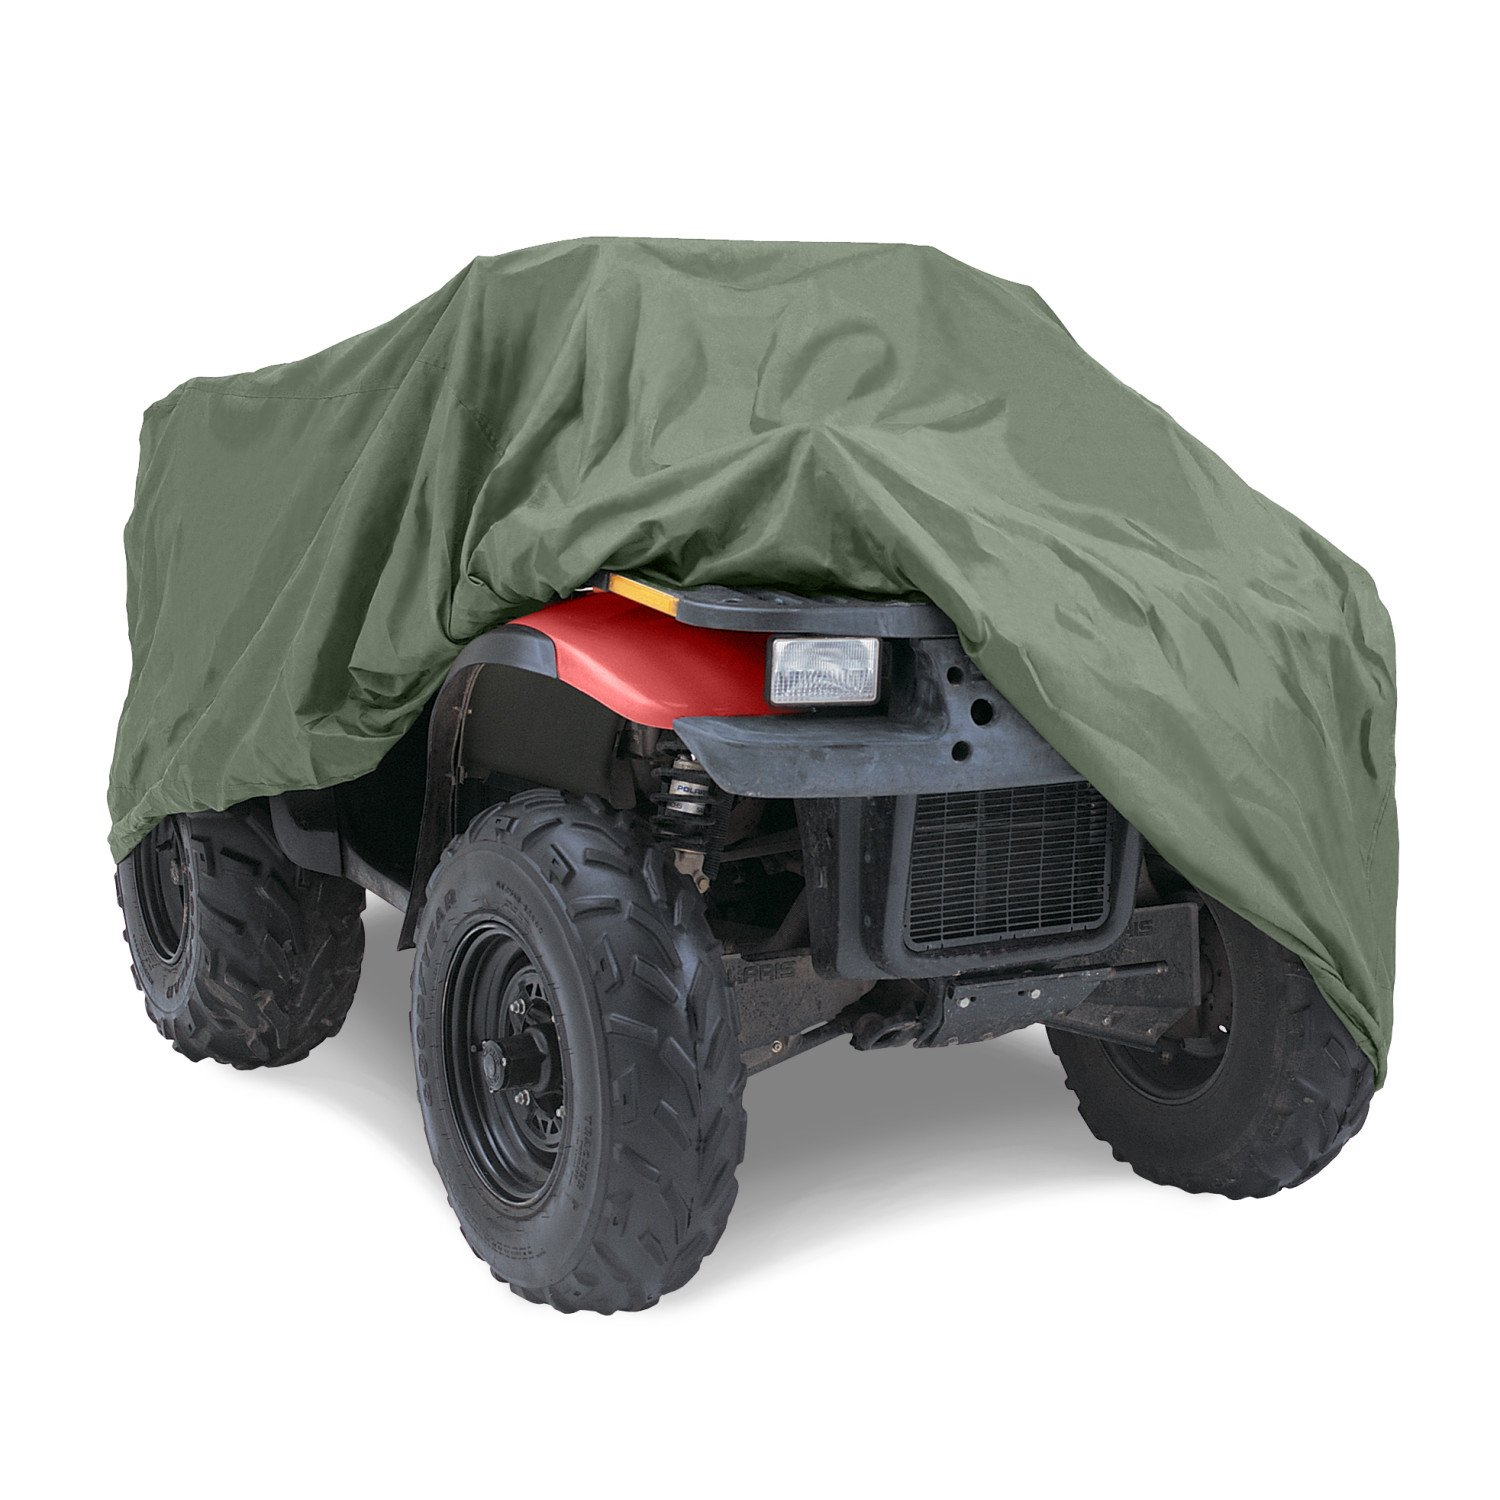 """Budge Sportsman Extra Large ATV Cover Fits ATVs up to 7' 3"""" Long, ATV-3 (Olive, Waterproof)"""